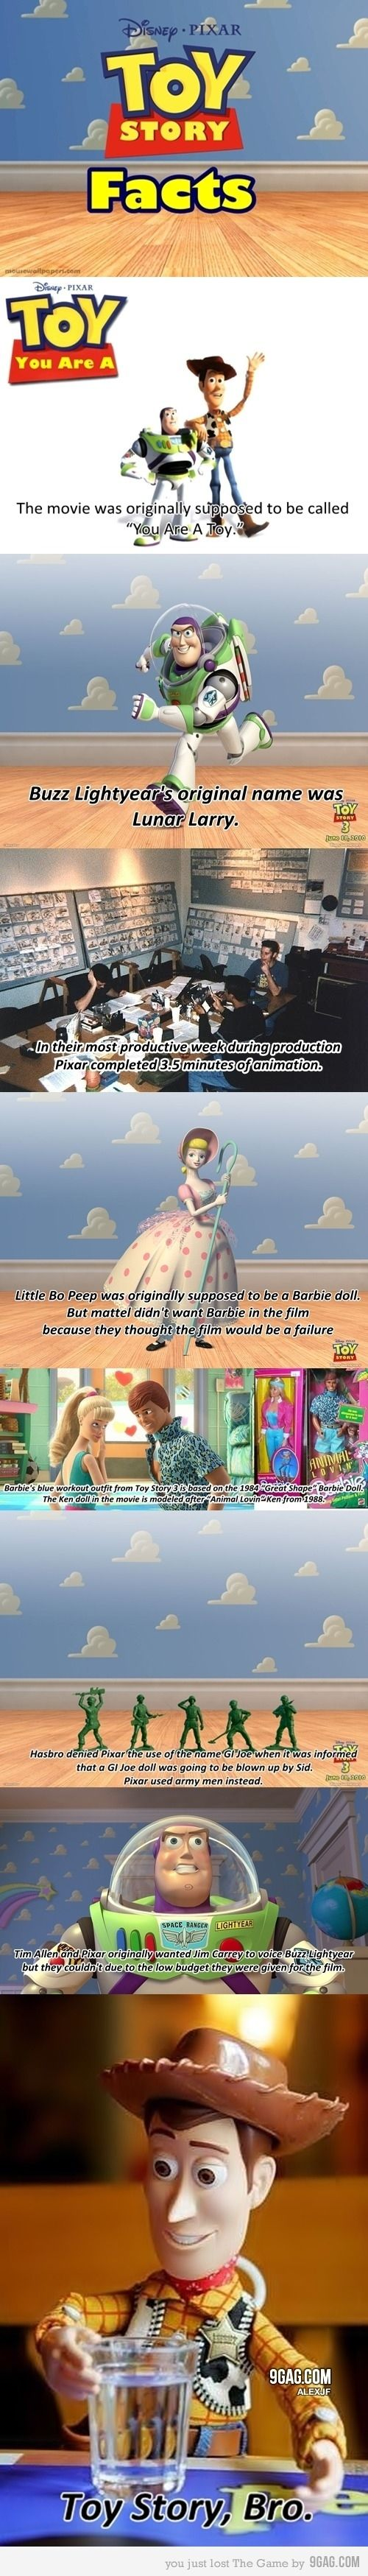 Stuff you didn't know about Toy Story. <3: